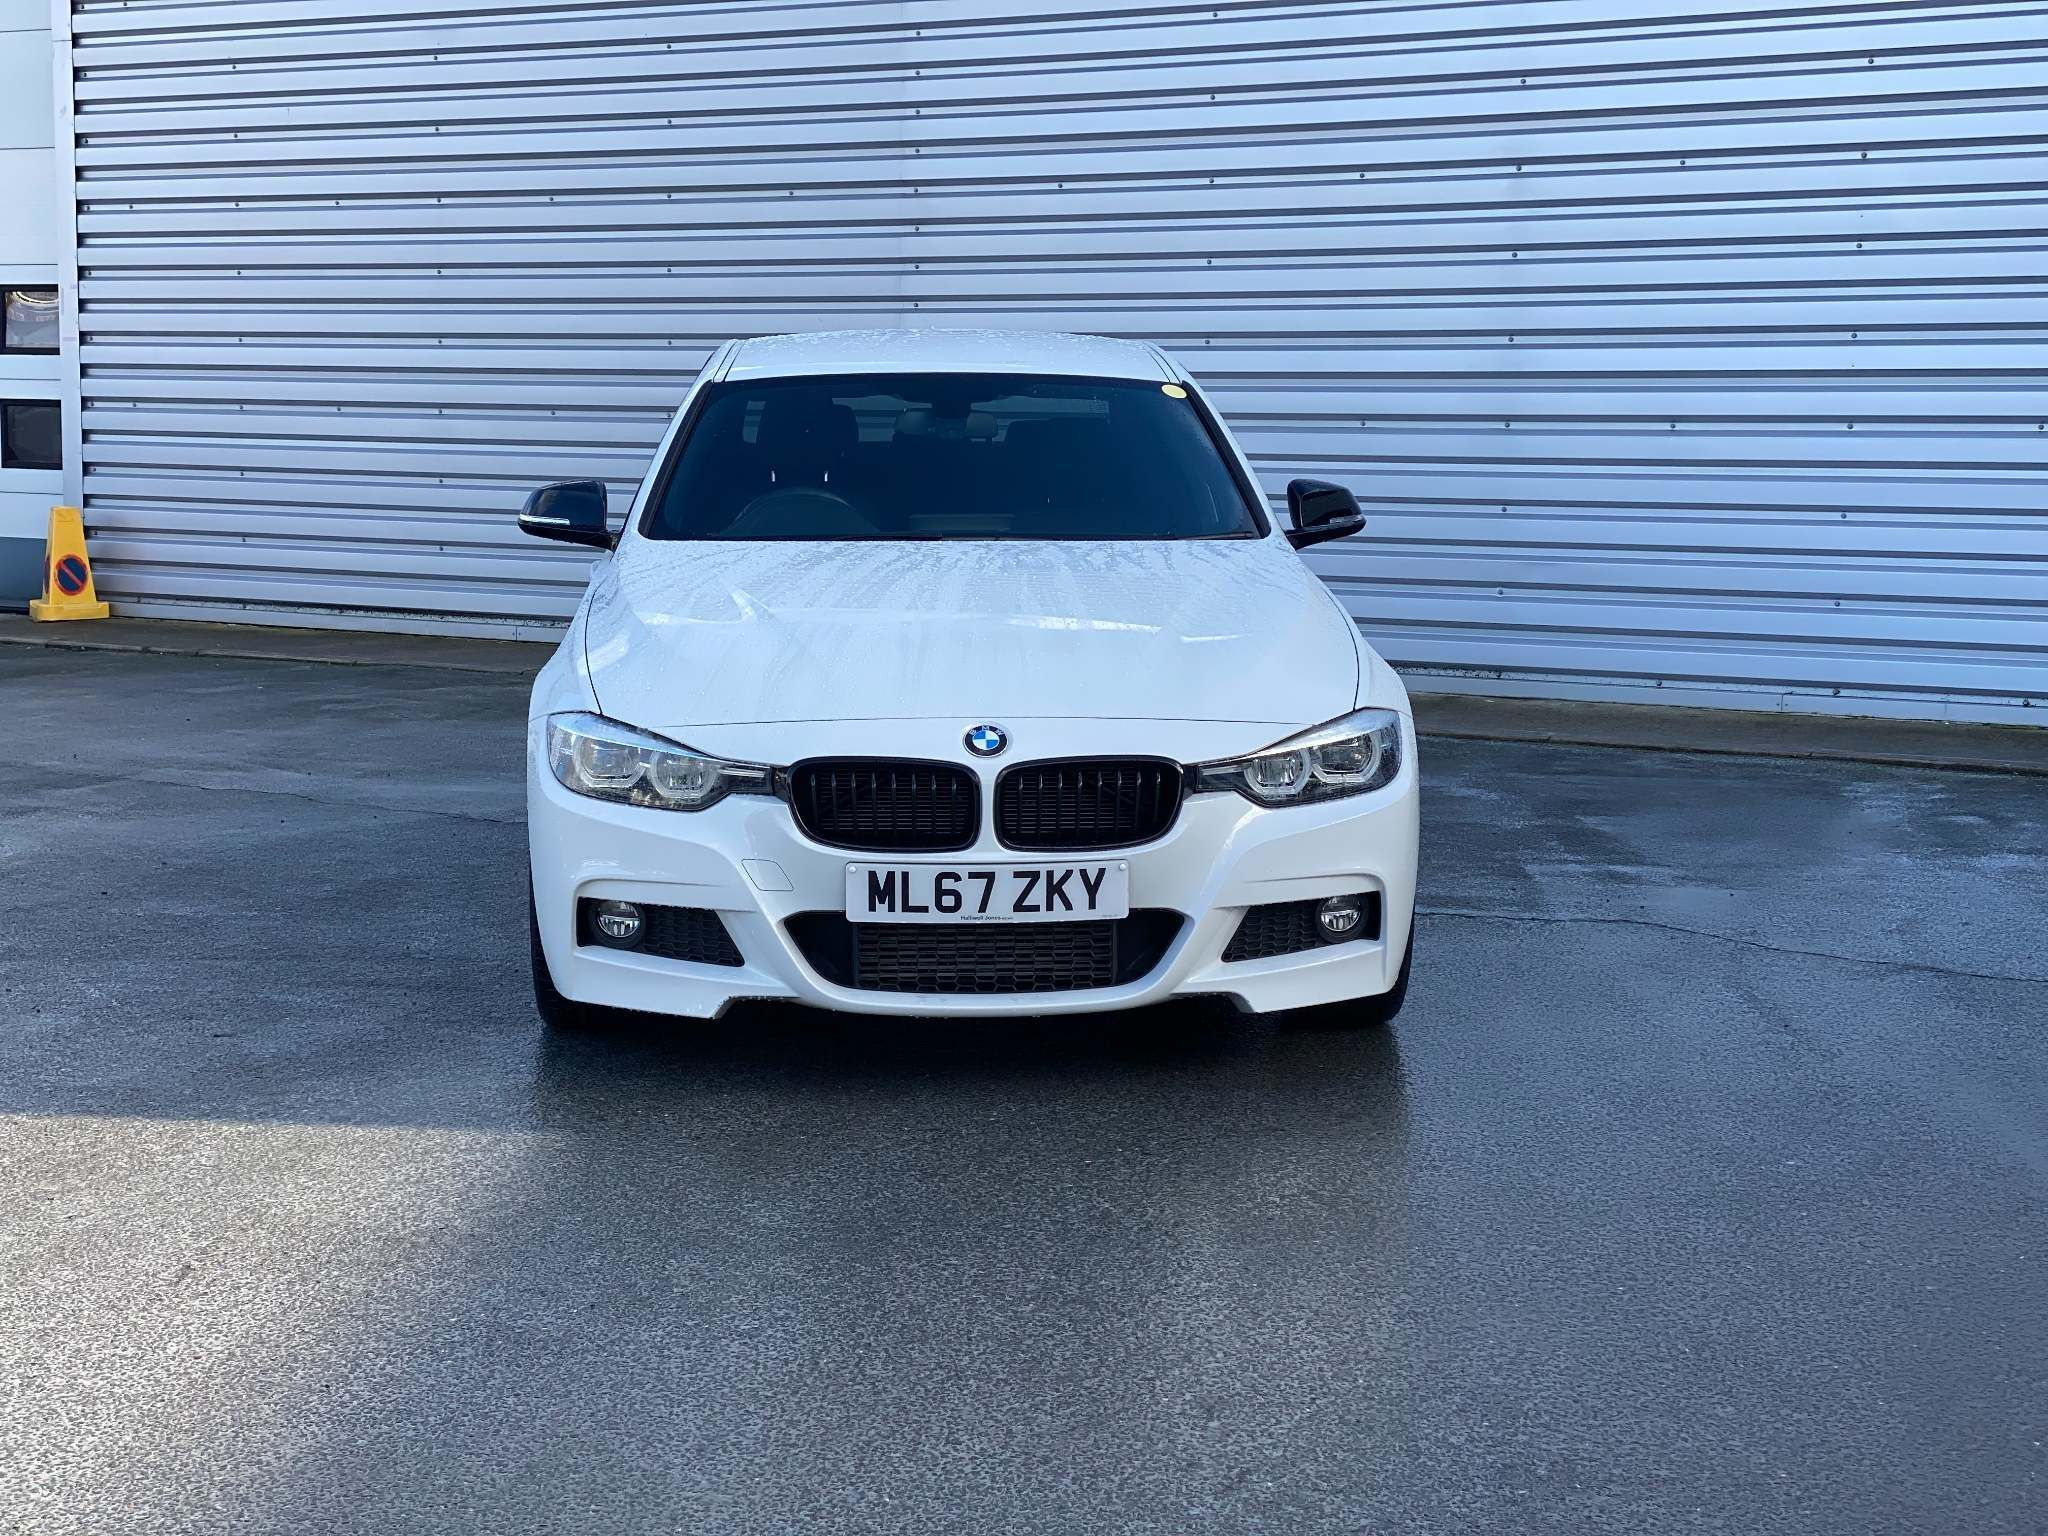 Image 4 - BMW 320d M Sport Shadow Edition Saloon (ML67ZKY)